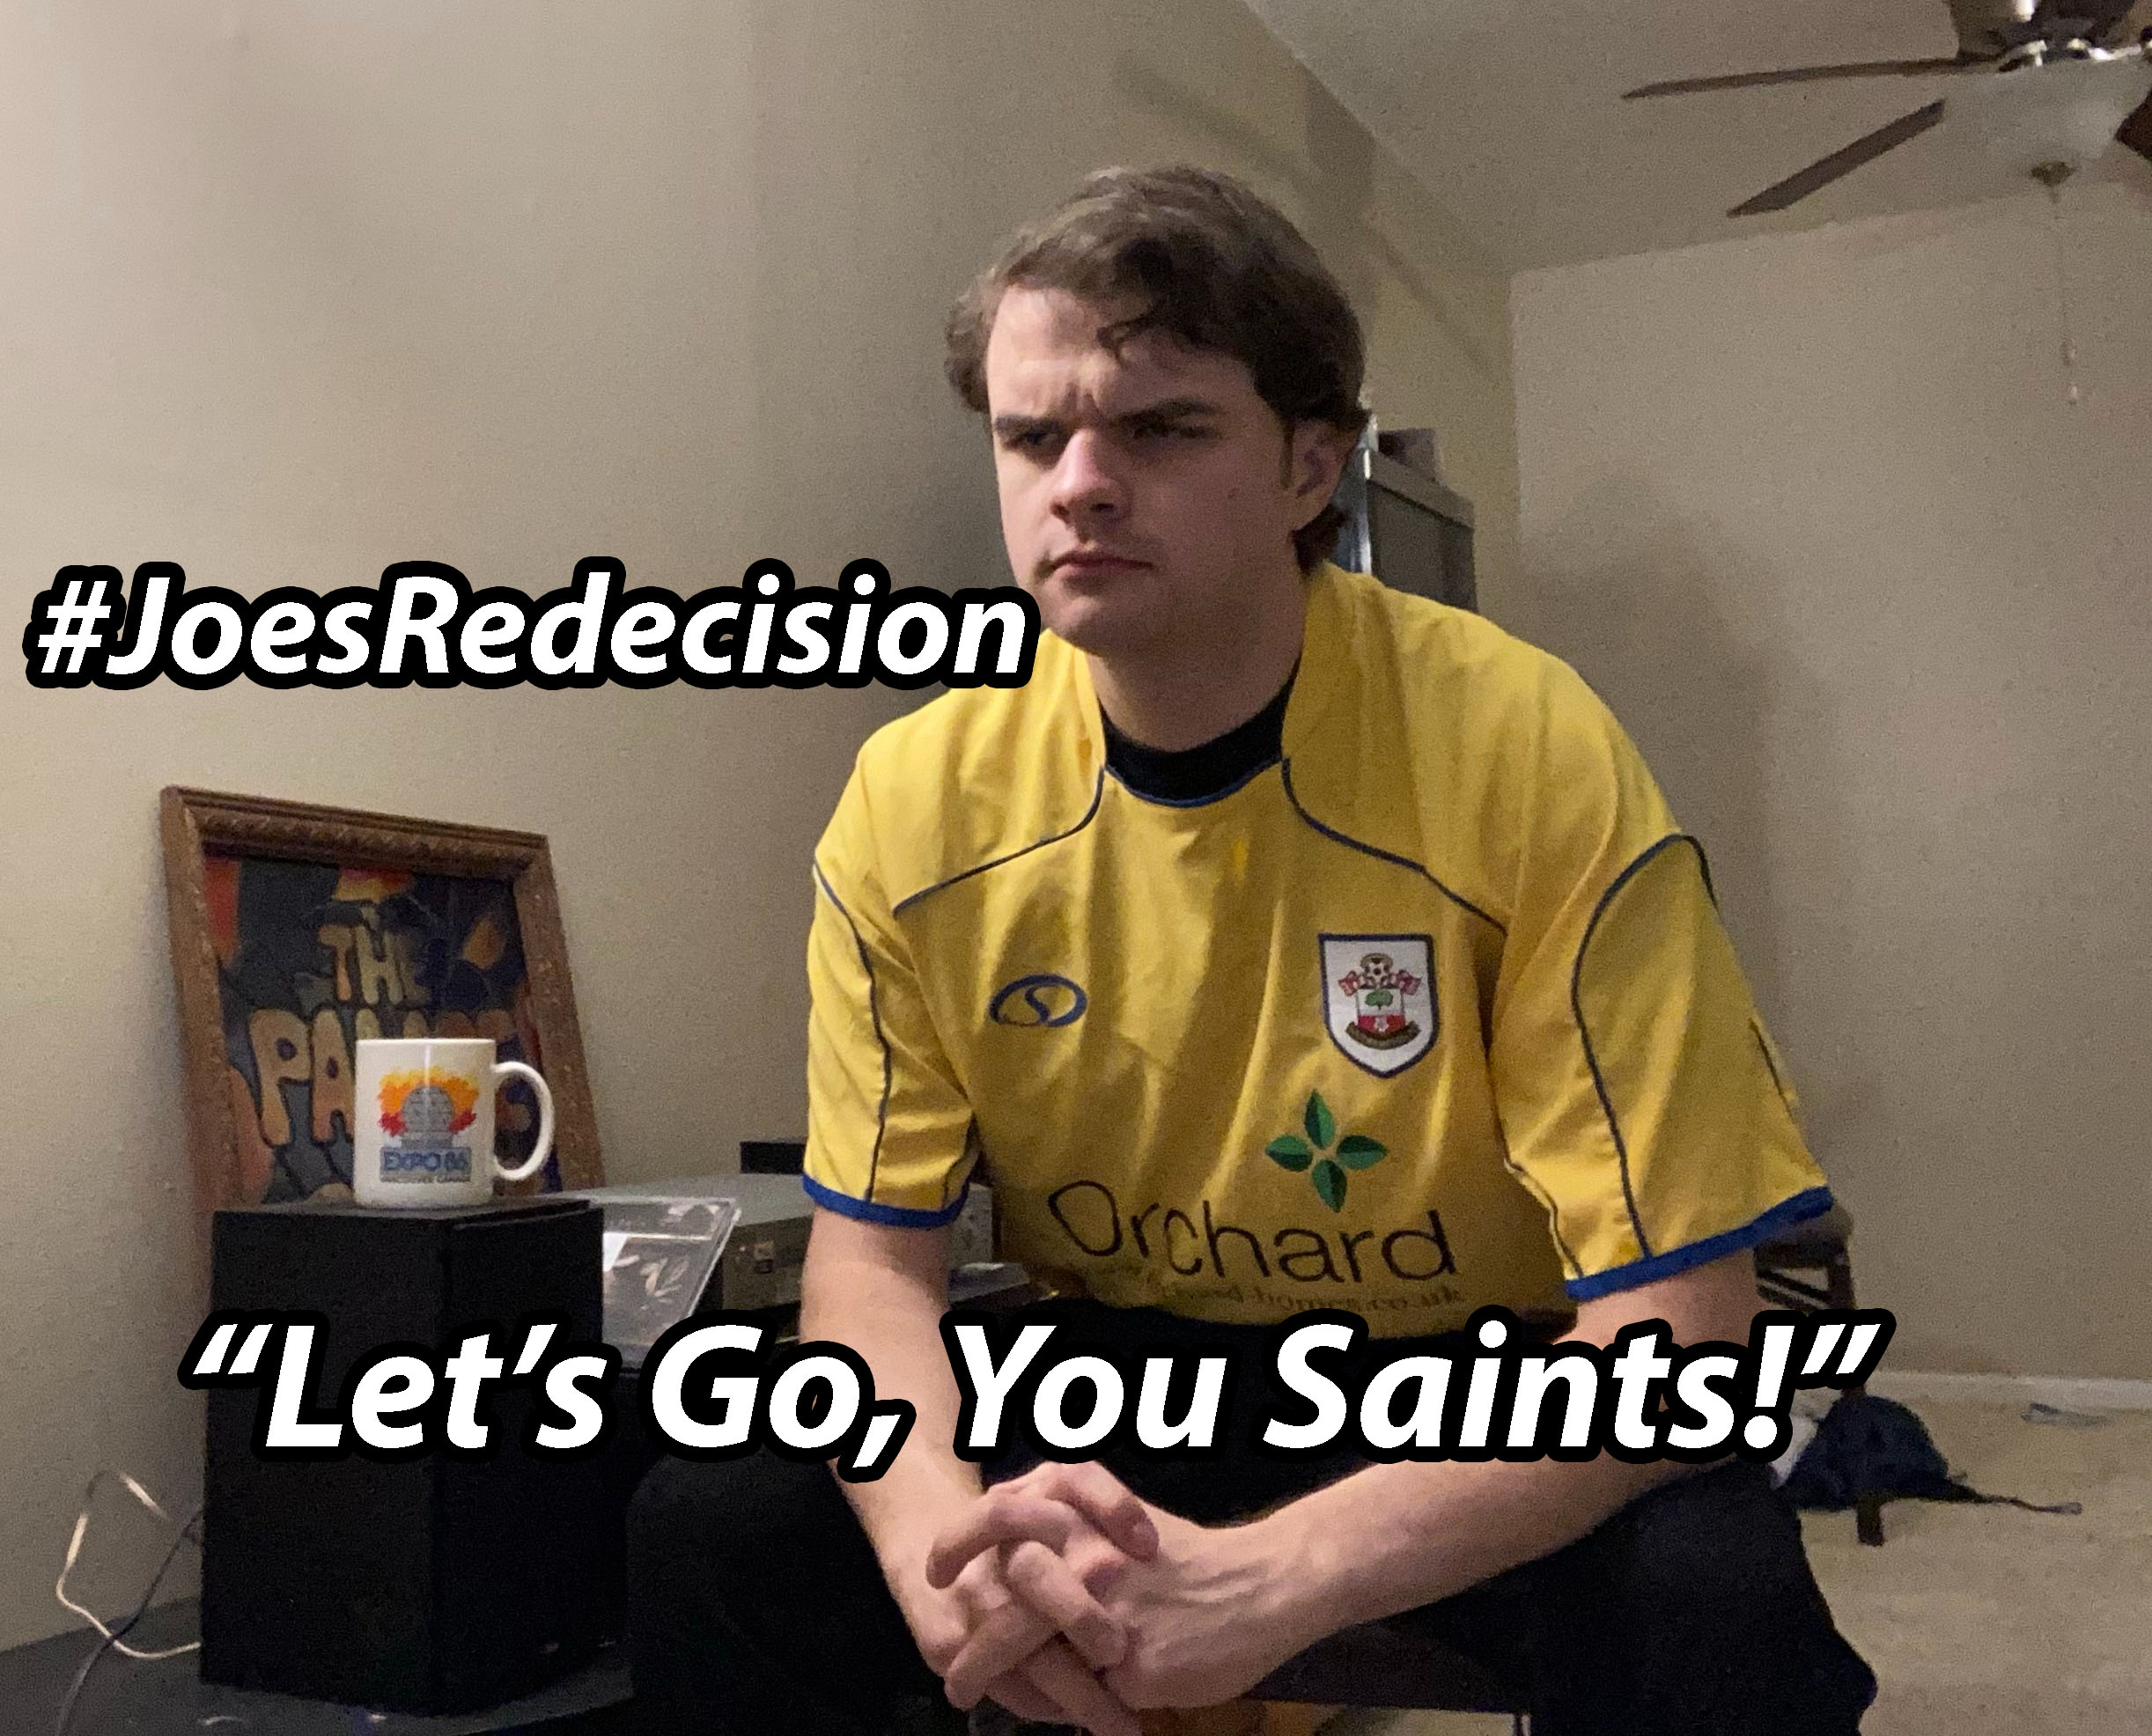 joes redecision